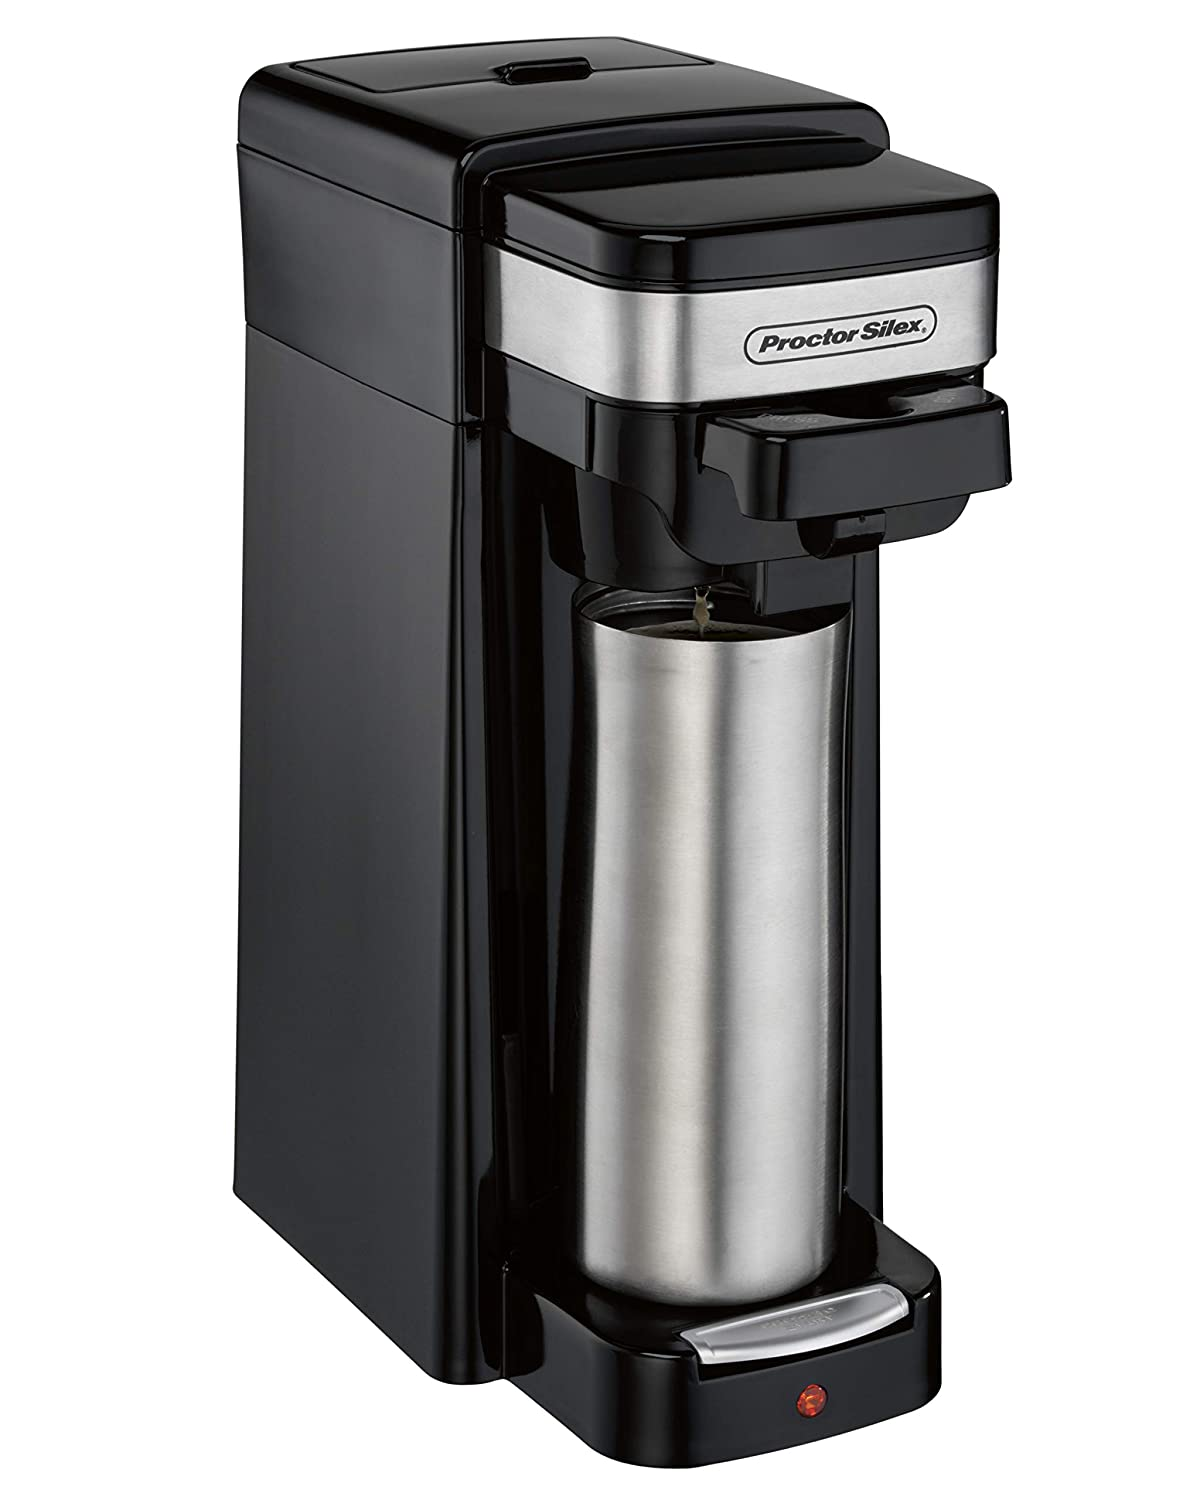 Hamilton Beach 49969 Single-Serve Coffee Maker for Grounds and Pod Packs and Fits a Travel Mug